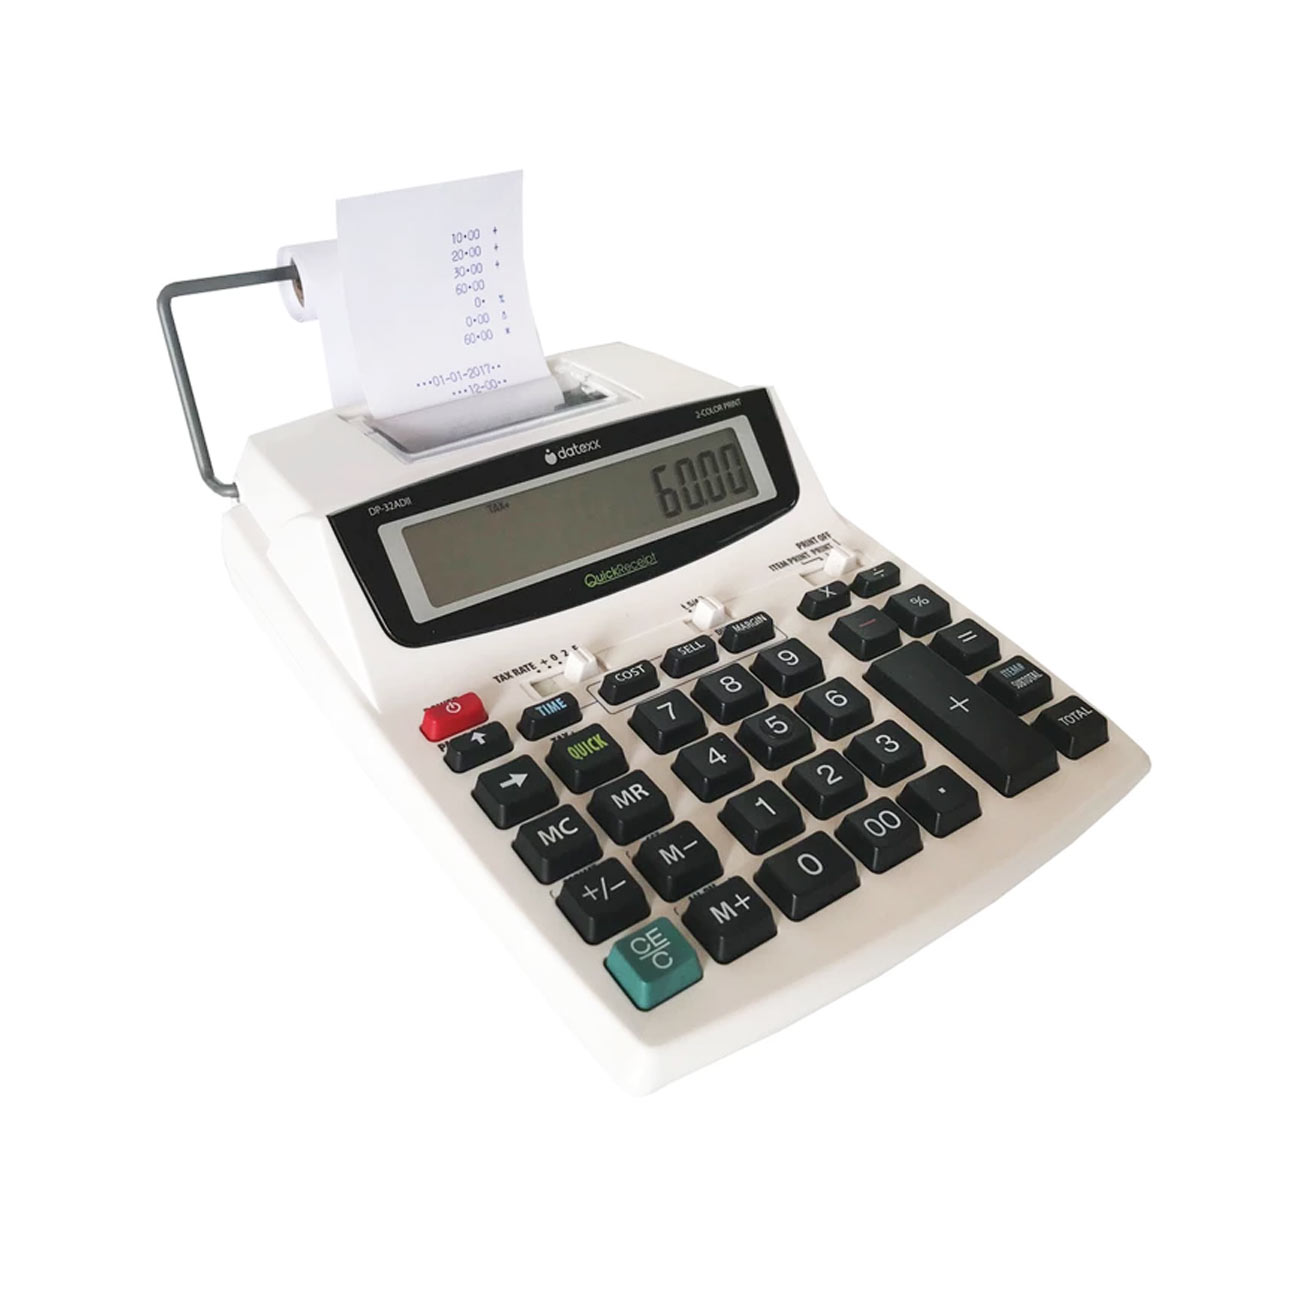 Portable 12-Digit AC-DC 2-Color Printing Calculator Price: $49.95